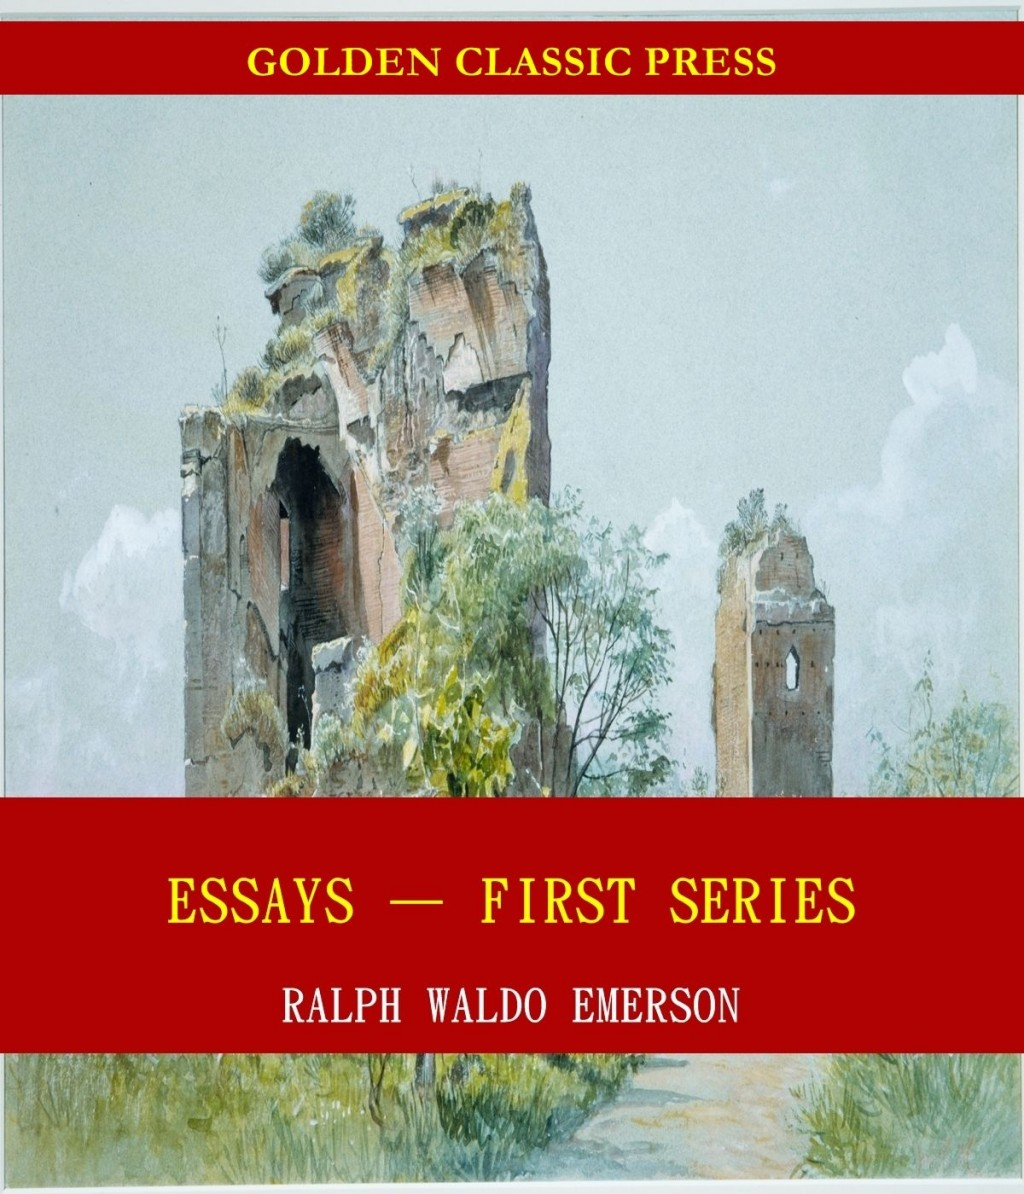 008 Essays First Series Essay Example Stunning In Zen Buddhism Emerson's Value Large